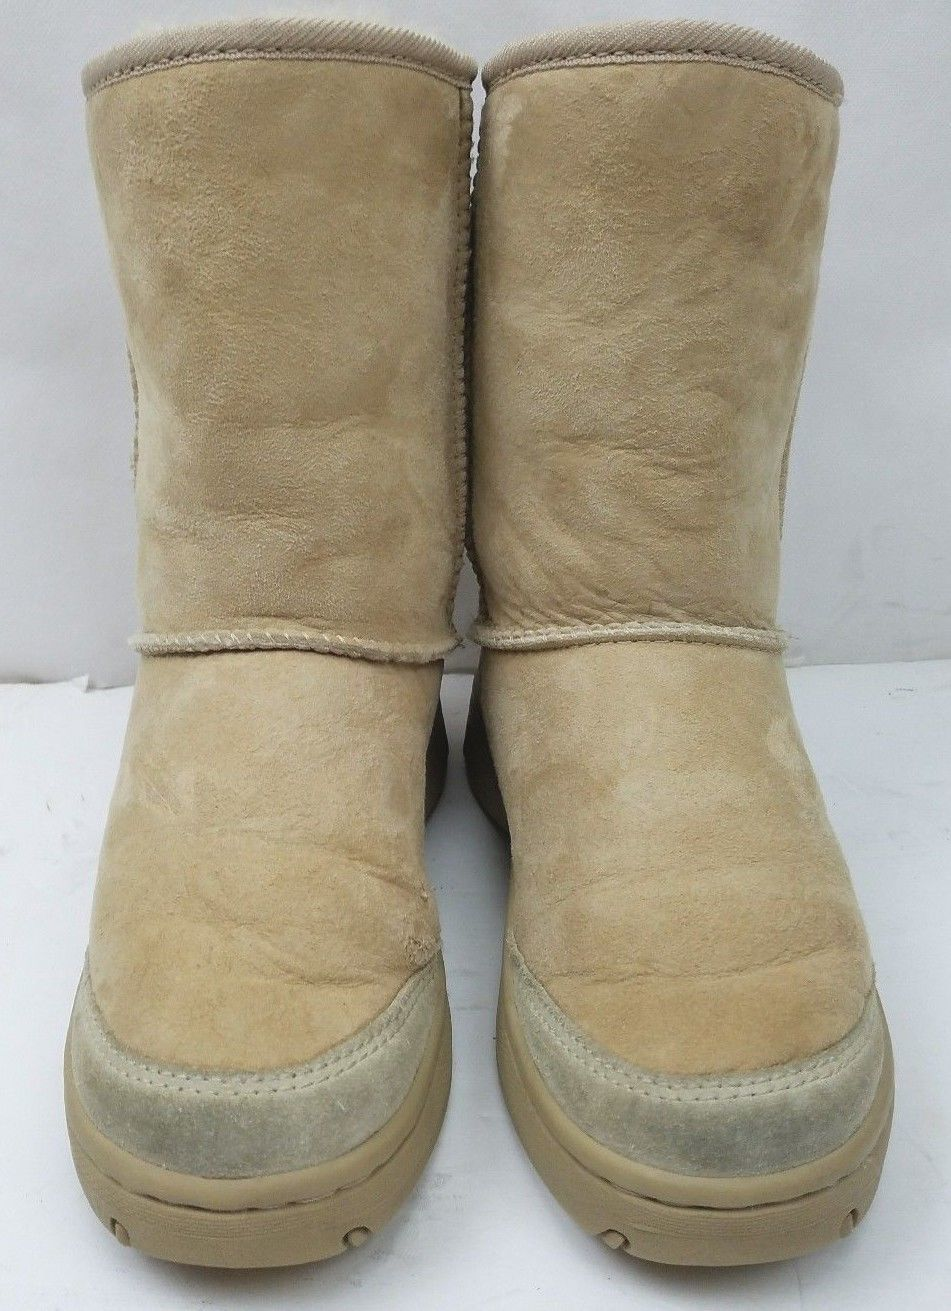 Authentic UGG 5275  Ultimate Short Chestnut Women's Boots Size: 6